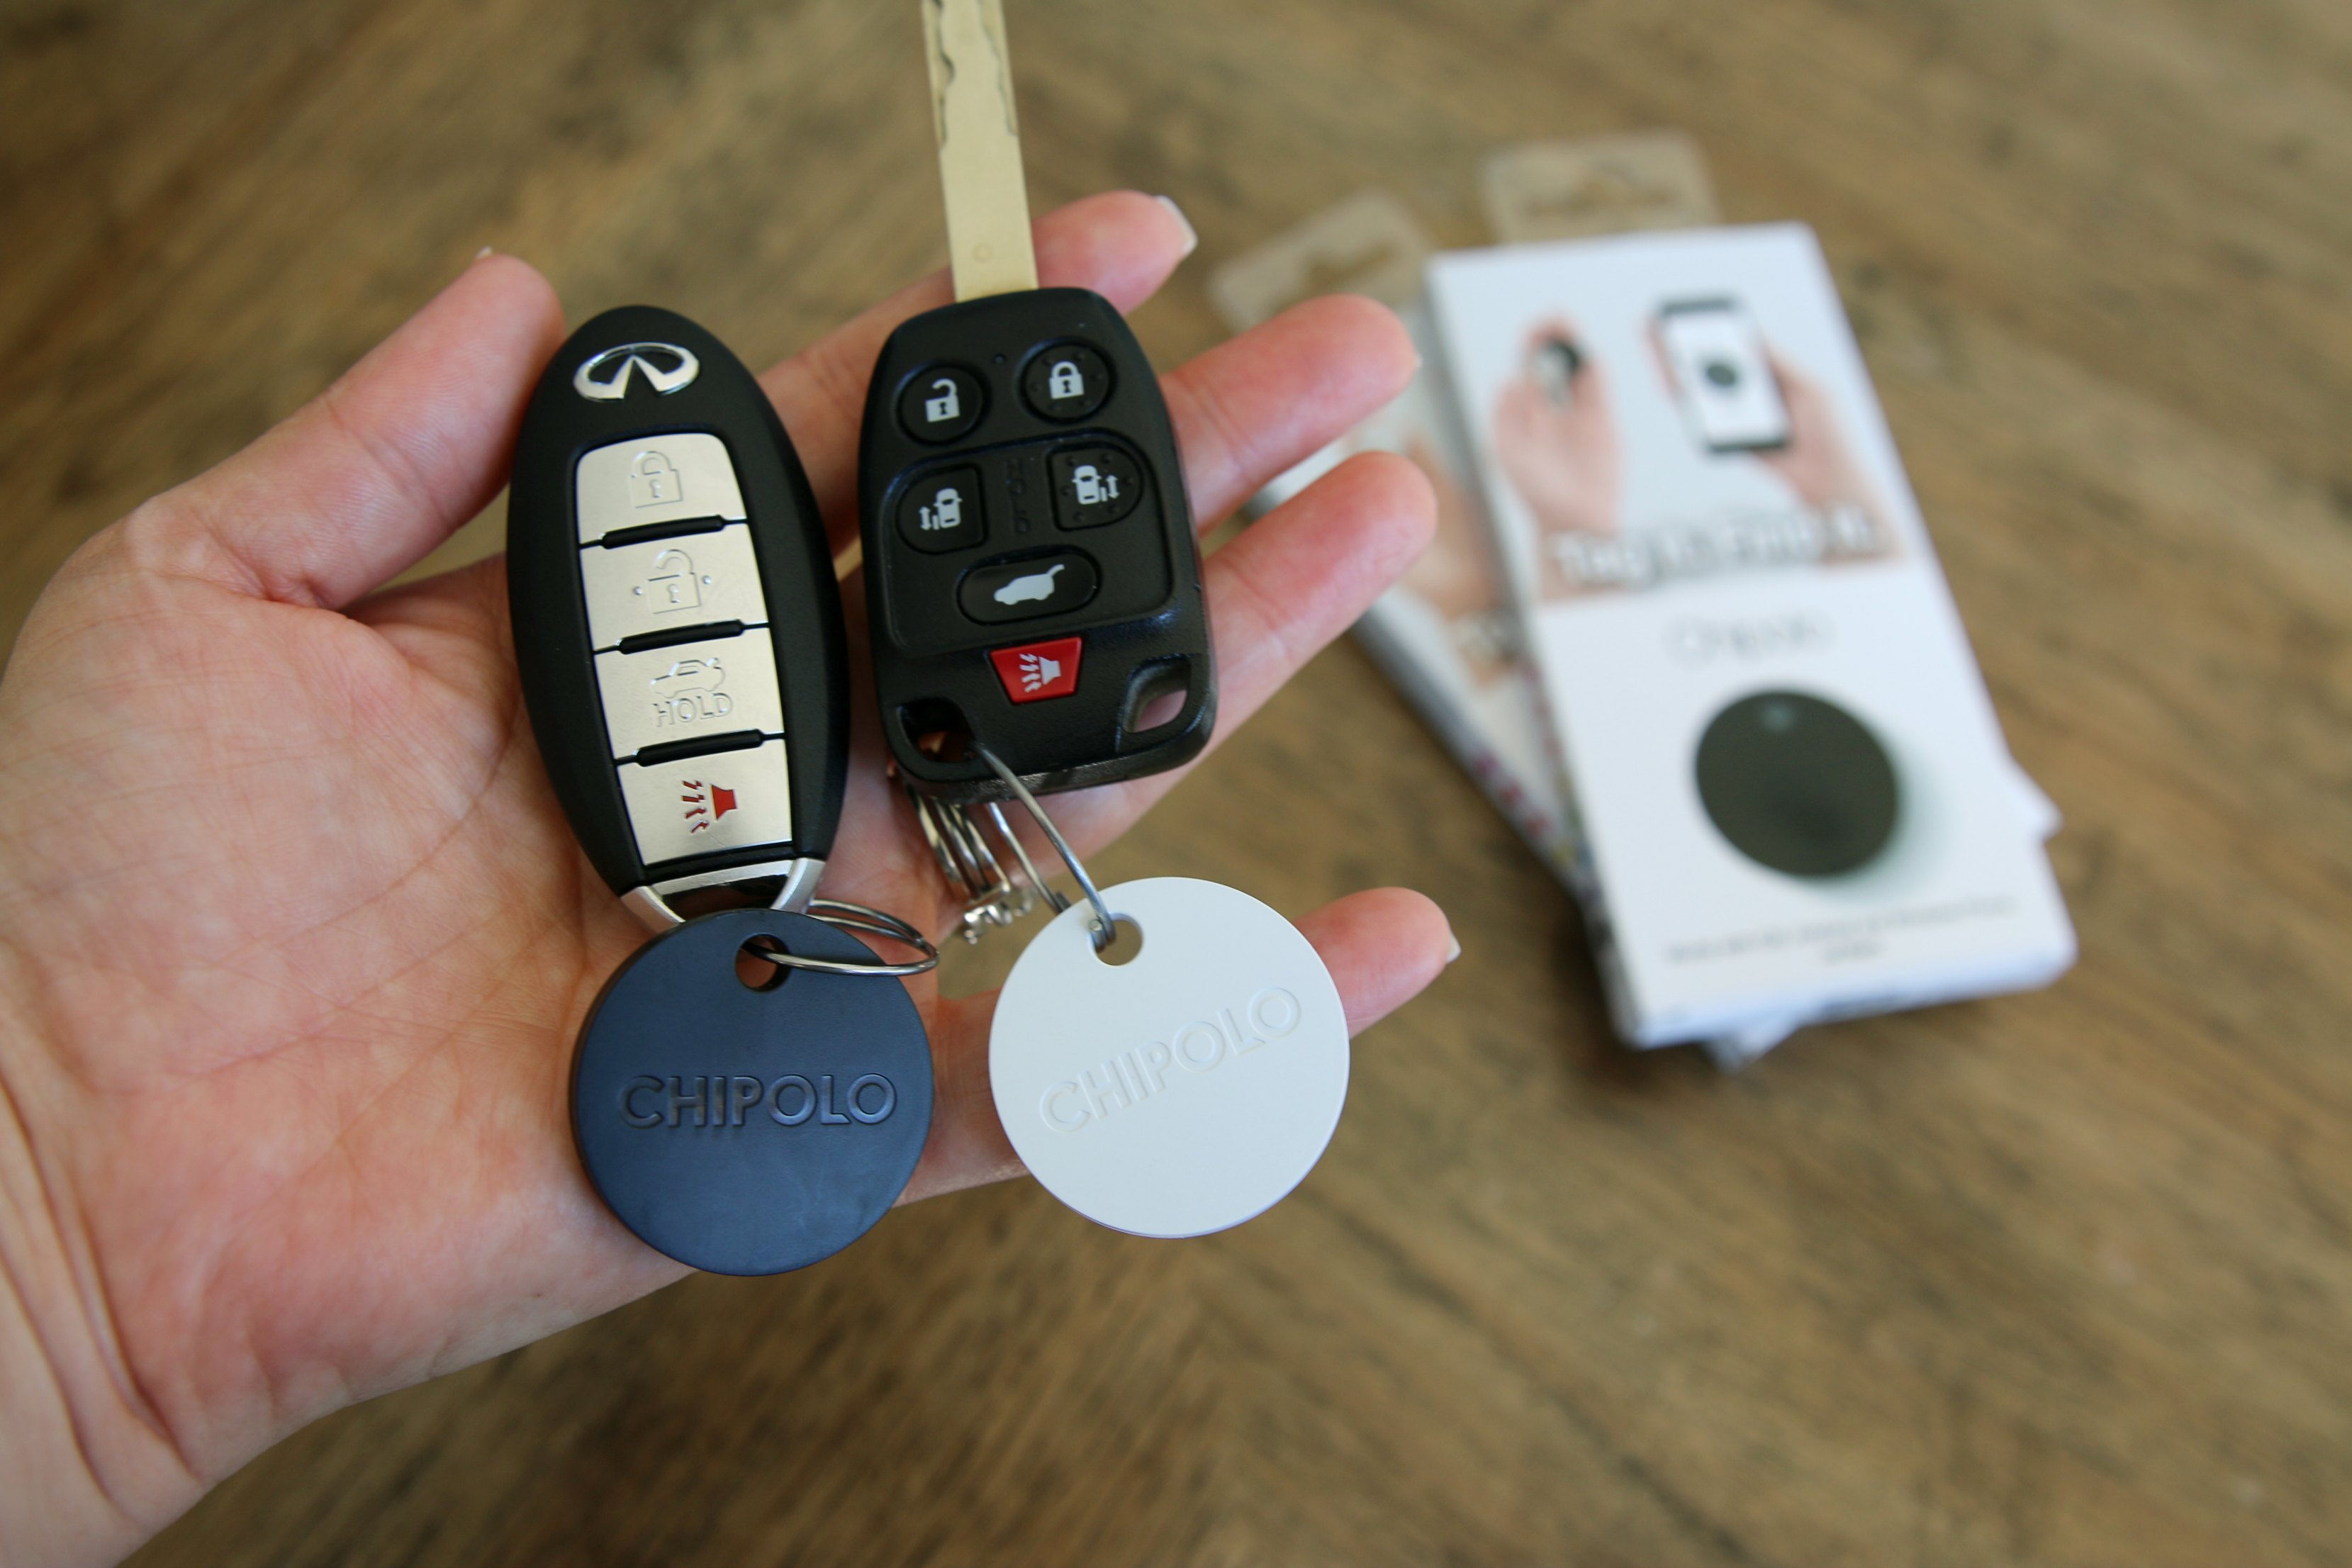 Chipolo Bluetooth Item Finder review